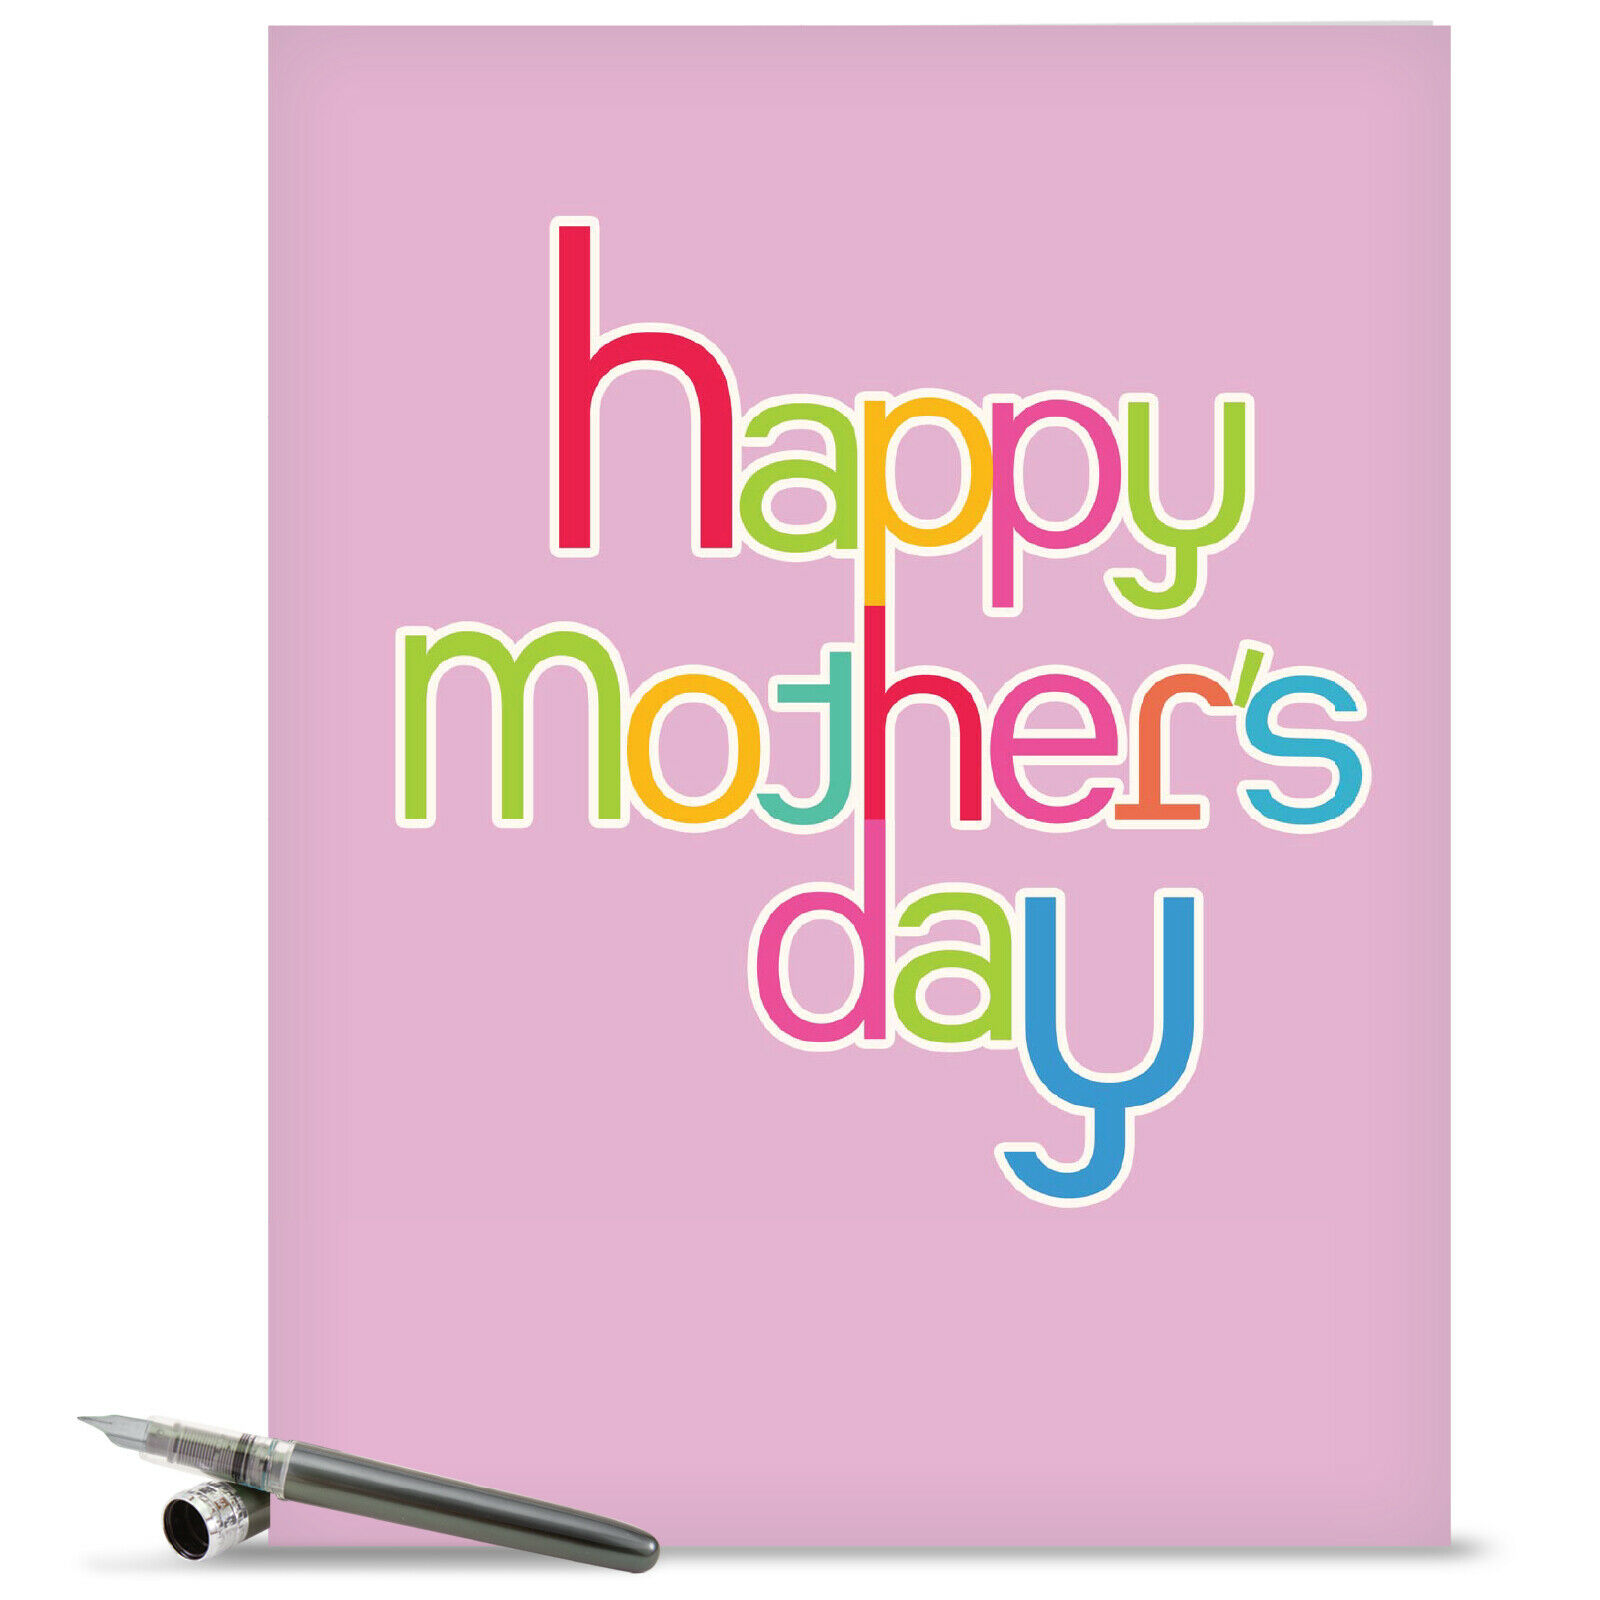 J2363kmdg Jumbo Mothers Day Card Hipster Mothers Day Greeting